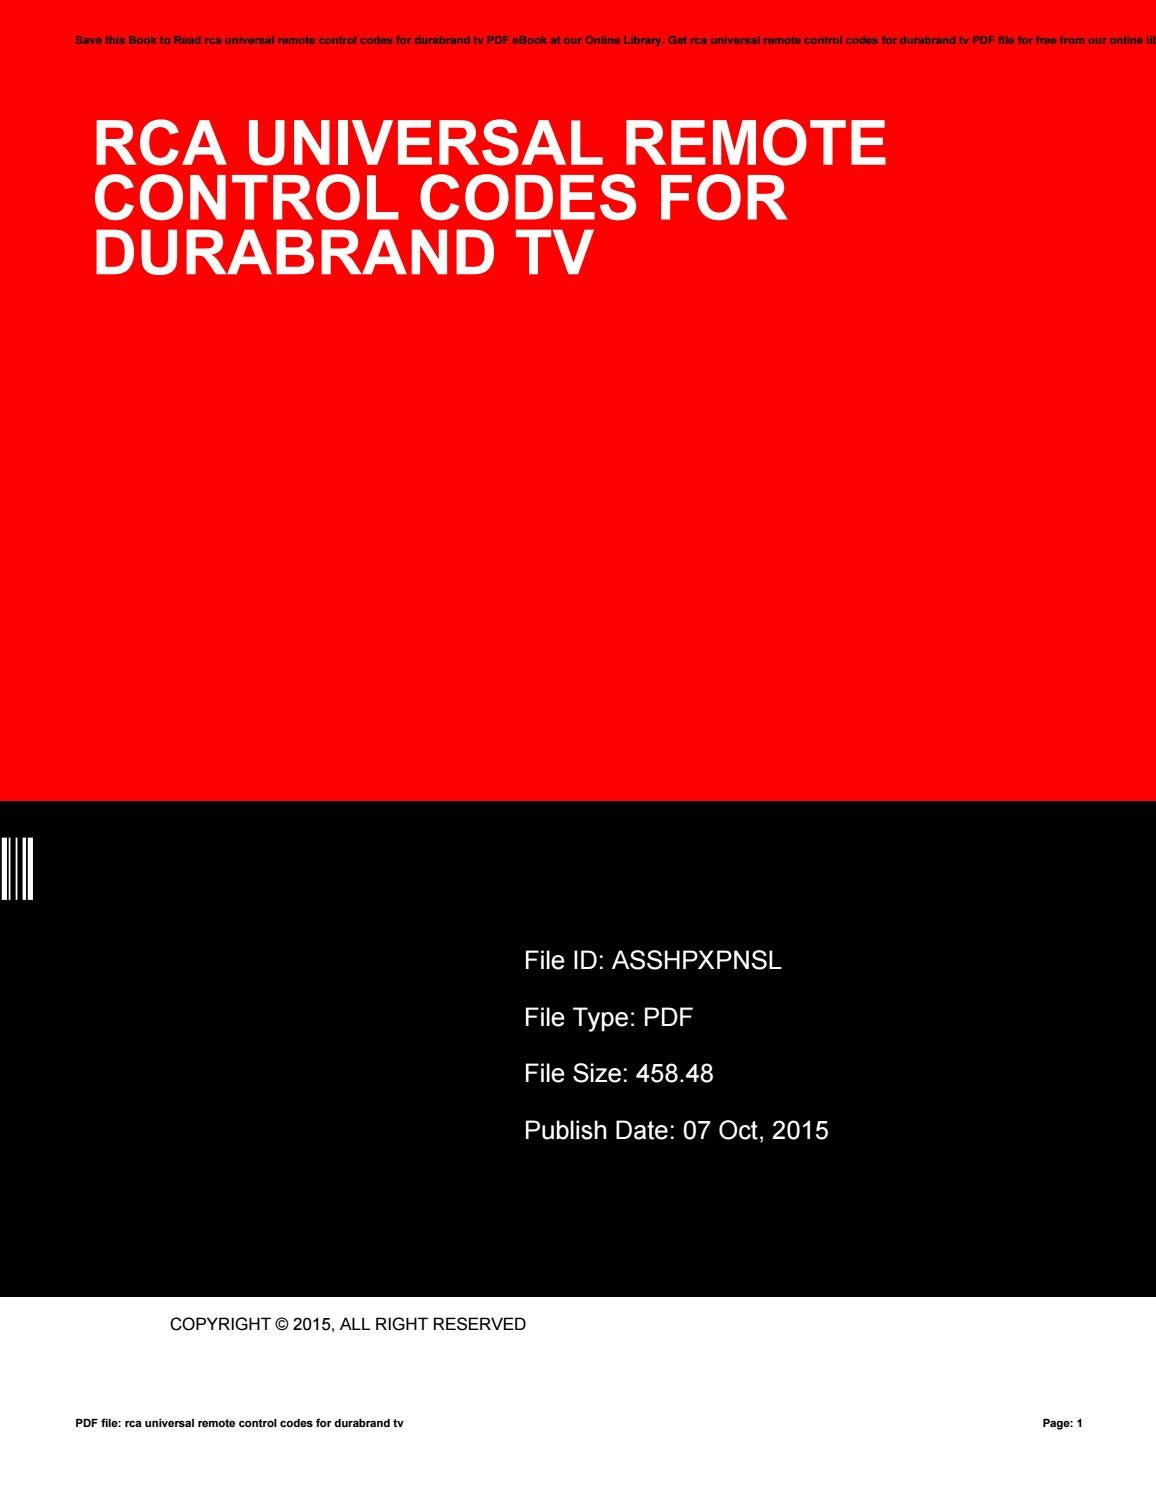 Rca universal remote control codes for durabrand tv by